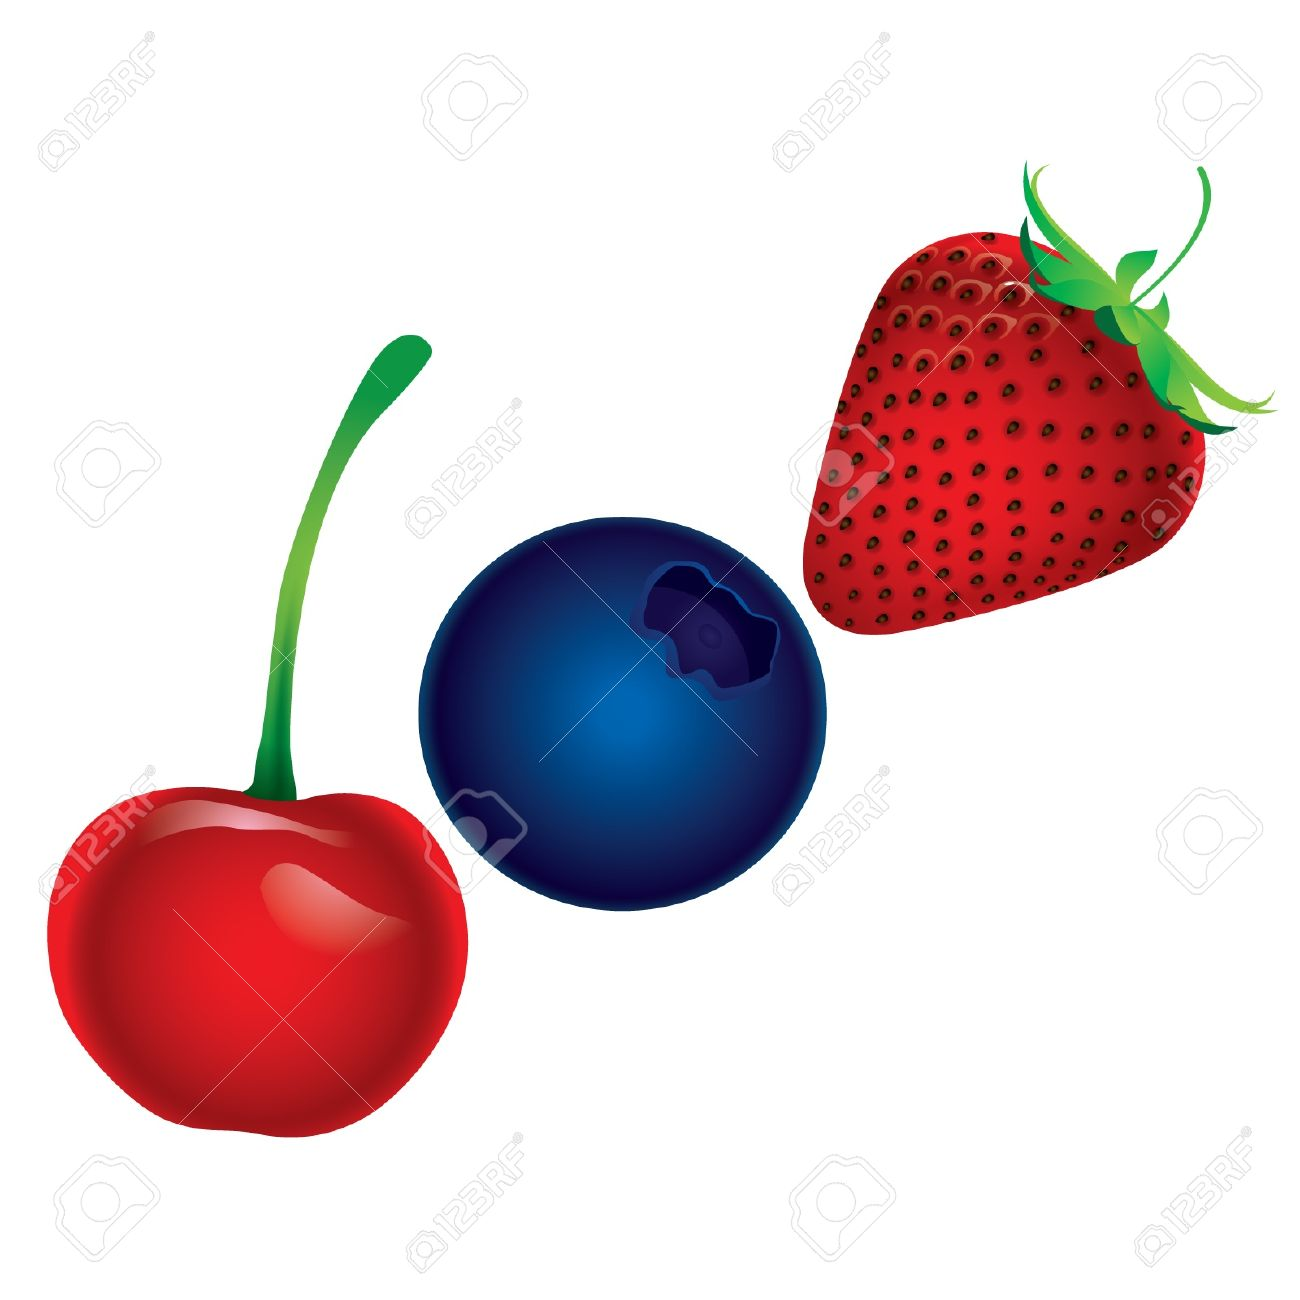 Pencil and in color. Cherry clipart strawberry